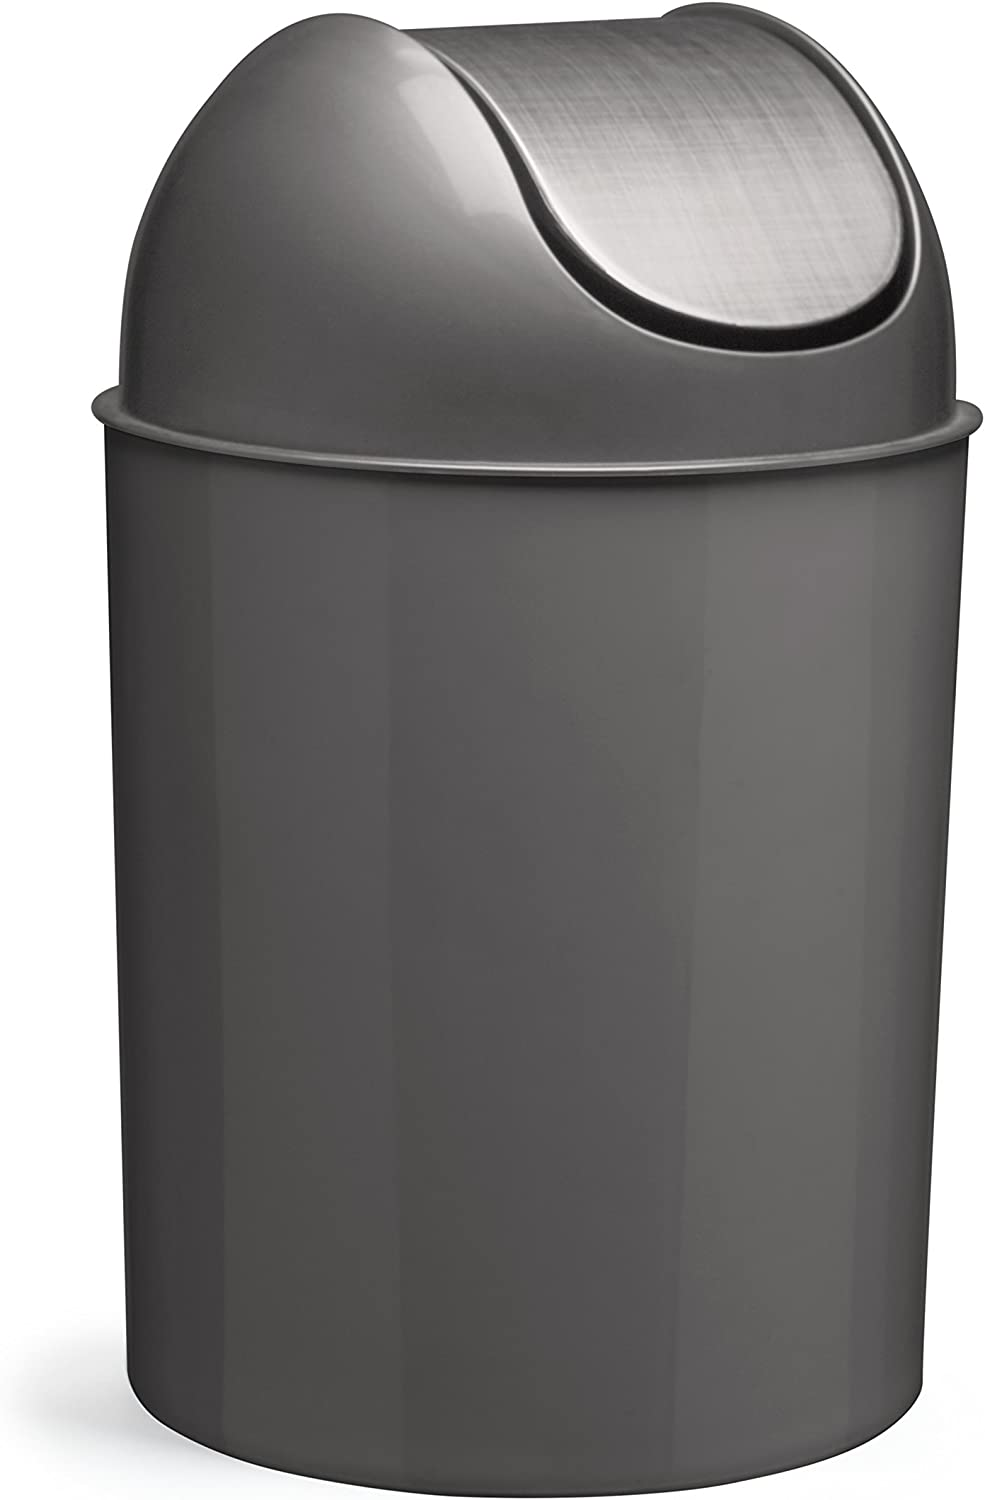 Amazon Com Umbra Mezzo 2 5 Gallon Trash Can With Lid Ideal For Small Spaces Home And Office Brushed Silver Home Kitchen